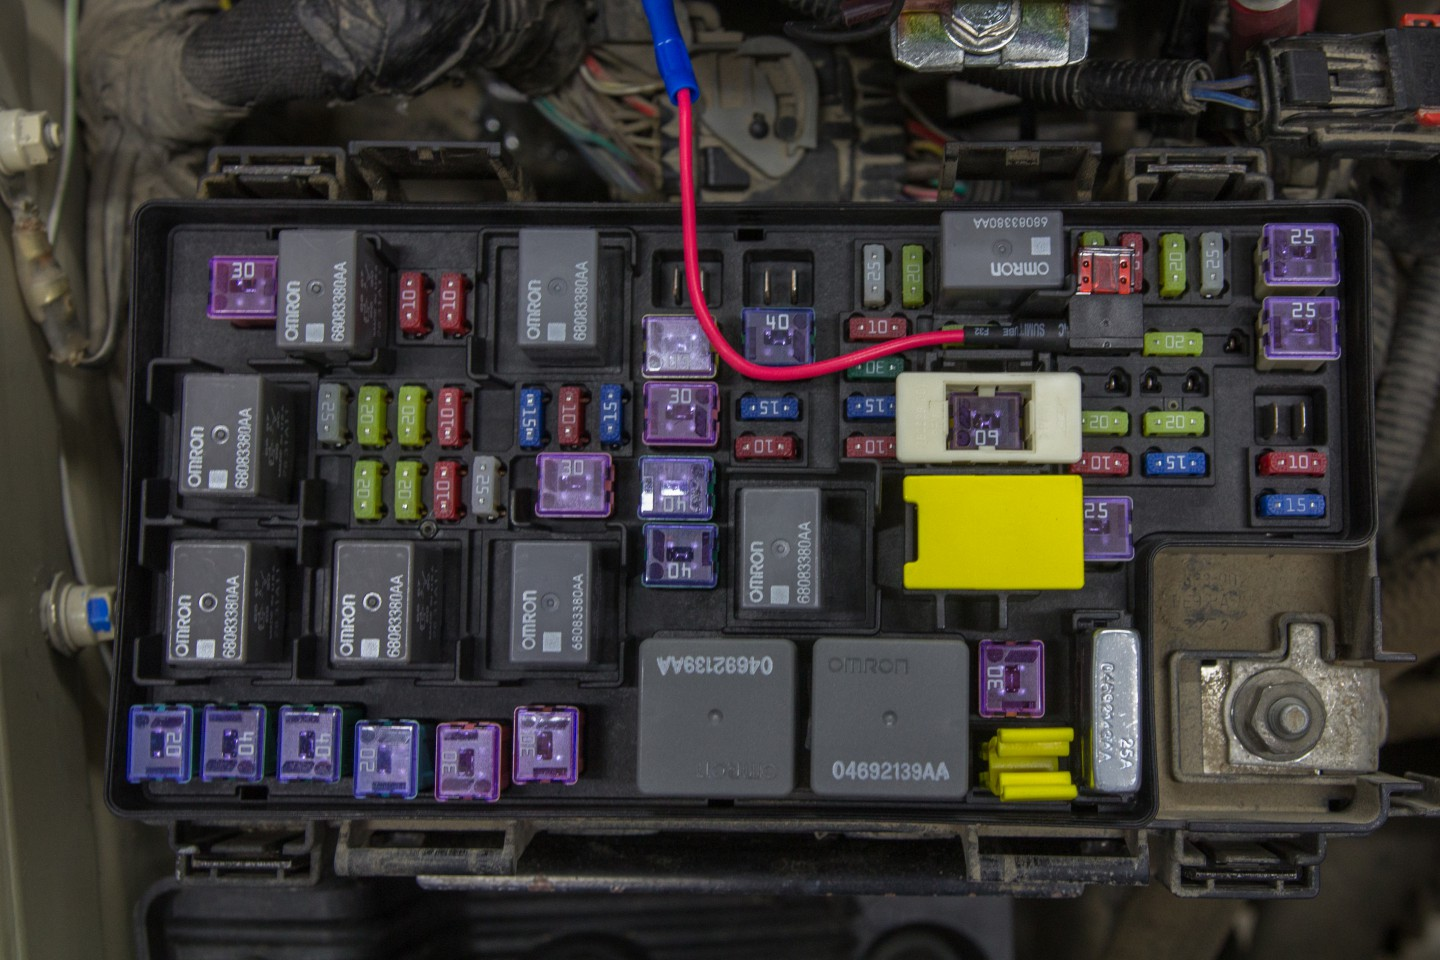 jk wrangler dual batteries trigger wire in fuse block 1440x960 2016 jeep jk fuse box diagram 1999 jeep wrangler fuse box diagram jeep wrangler tj fuse box diagram at gsmx.co